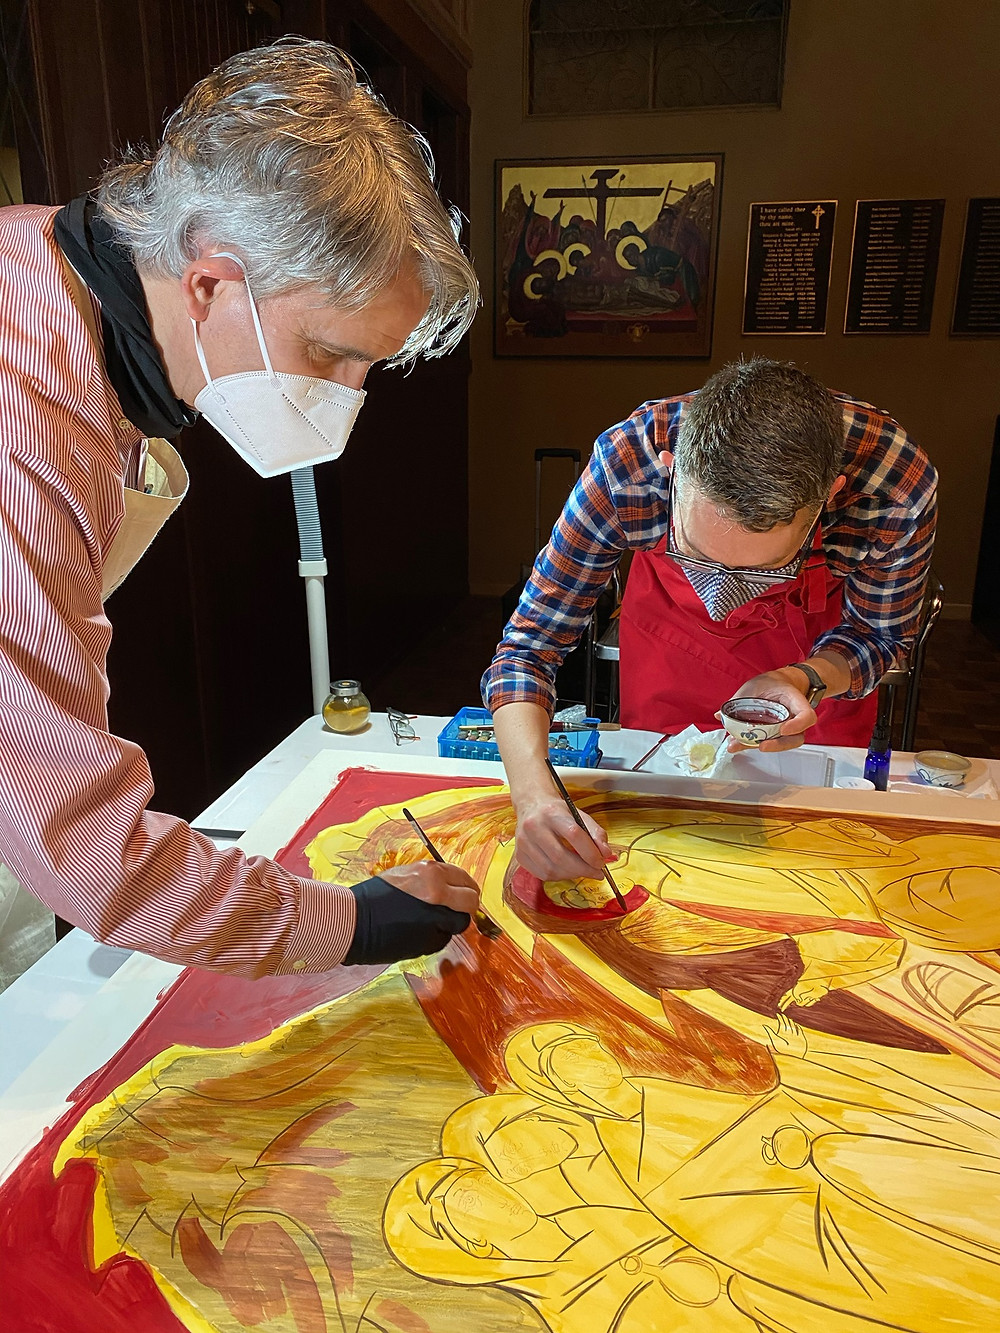 Two men in face masks painting a large horizontal wood icon